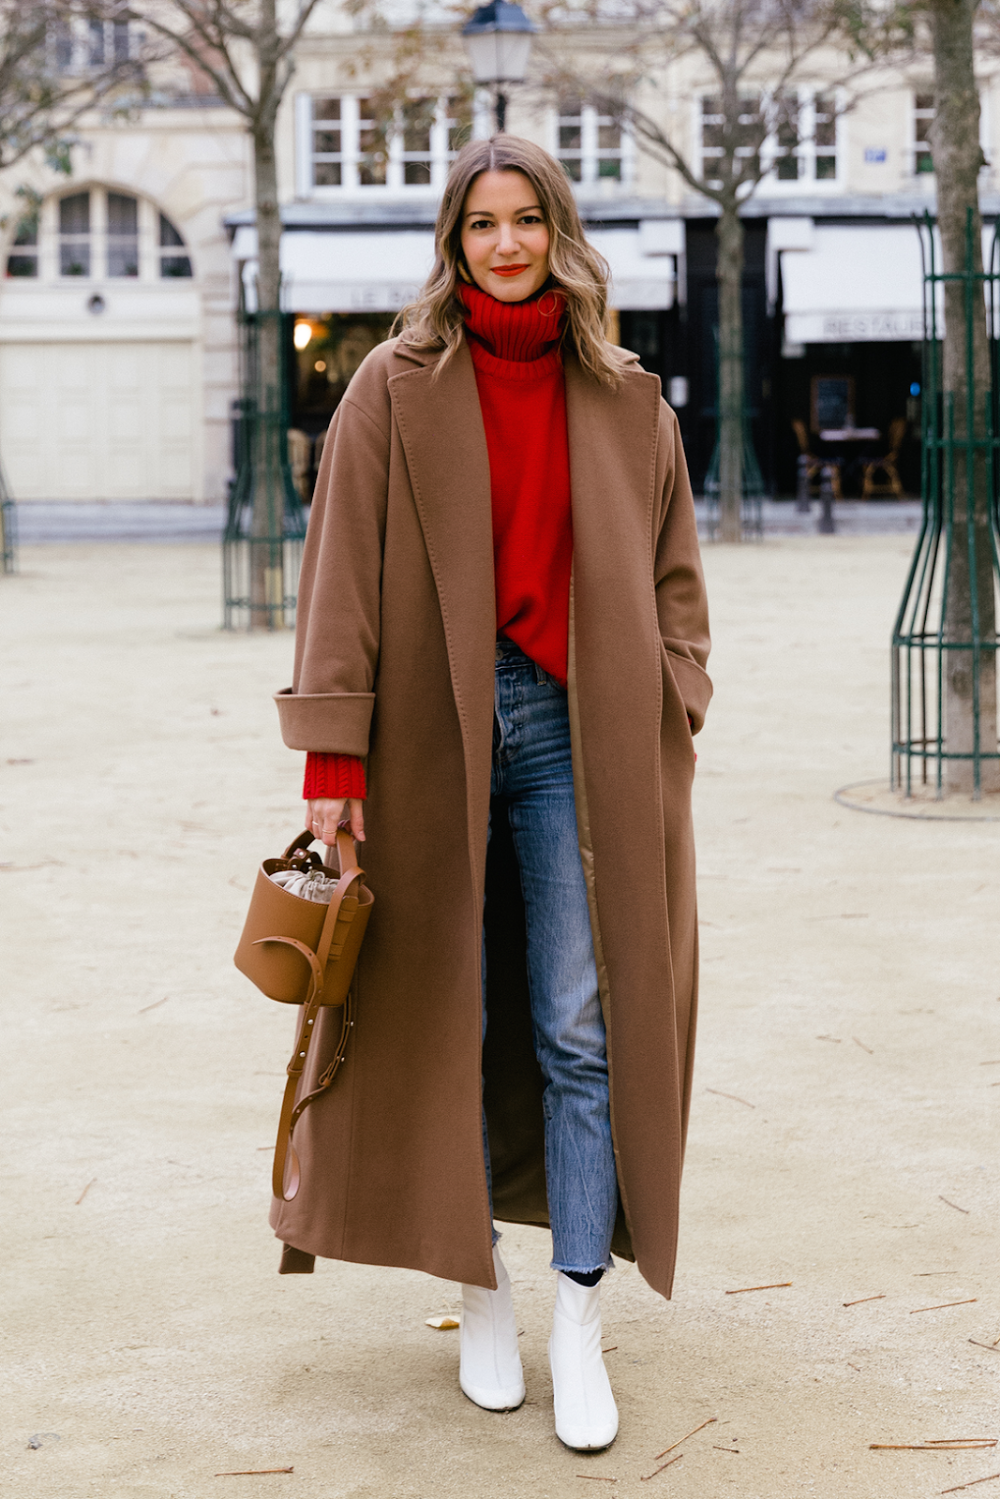 This Stylish Outfit Idea Is Perfect for Thanksgiving